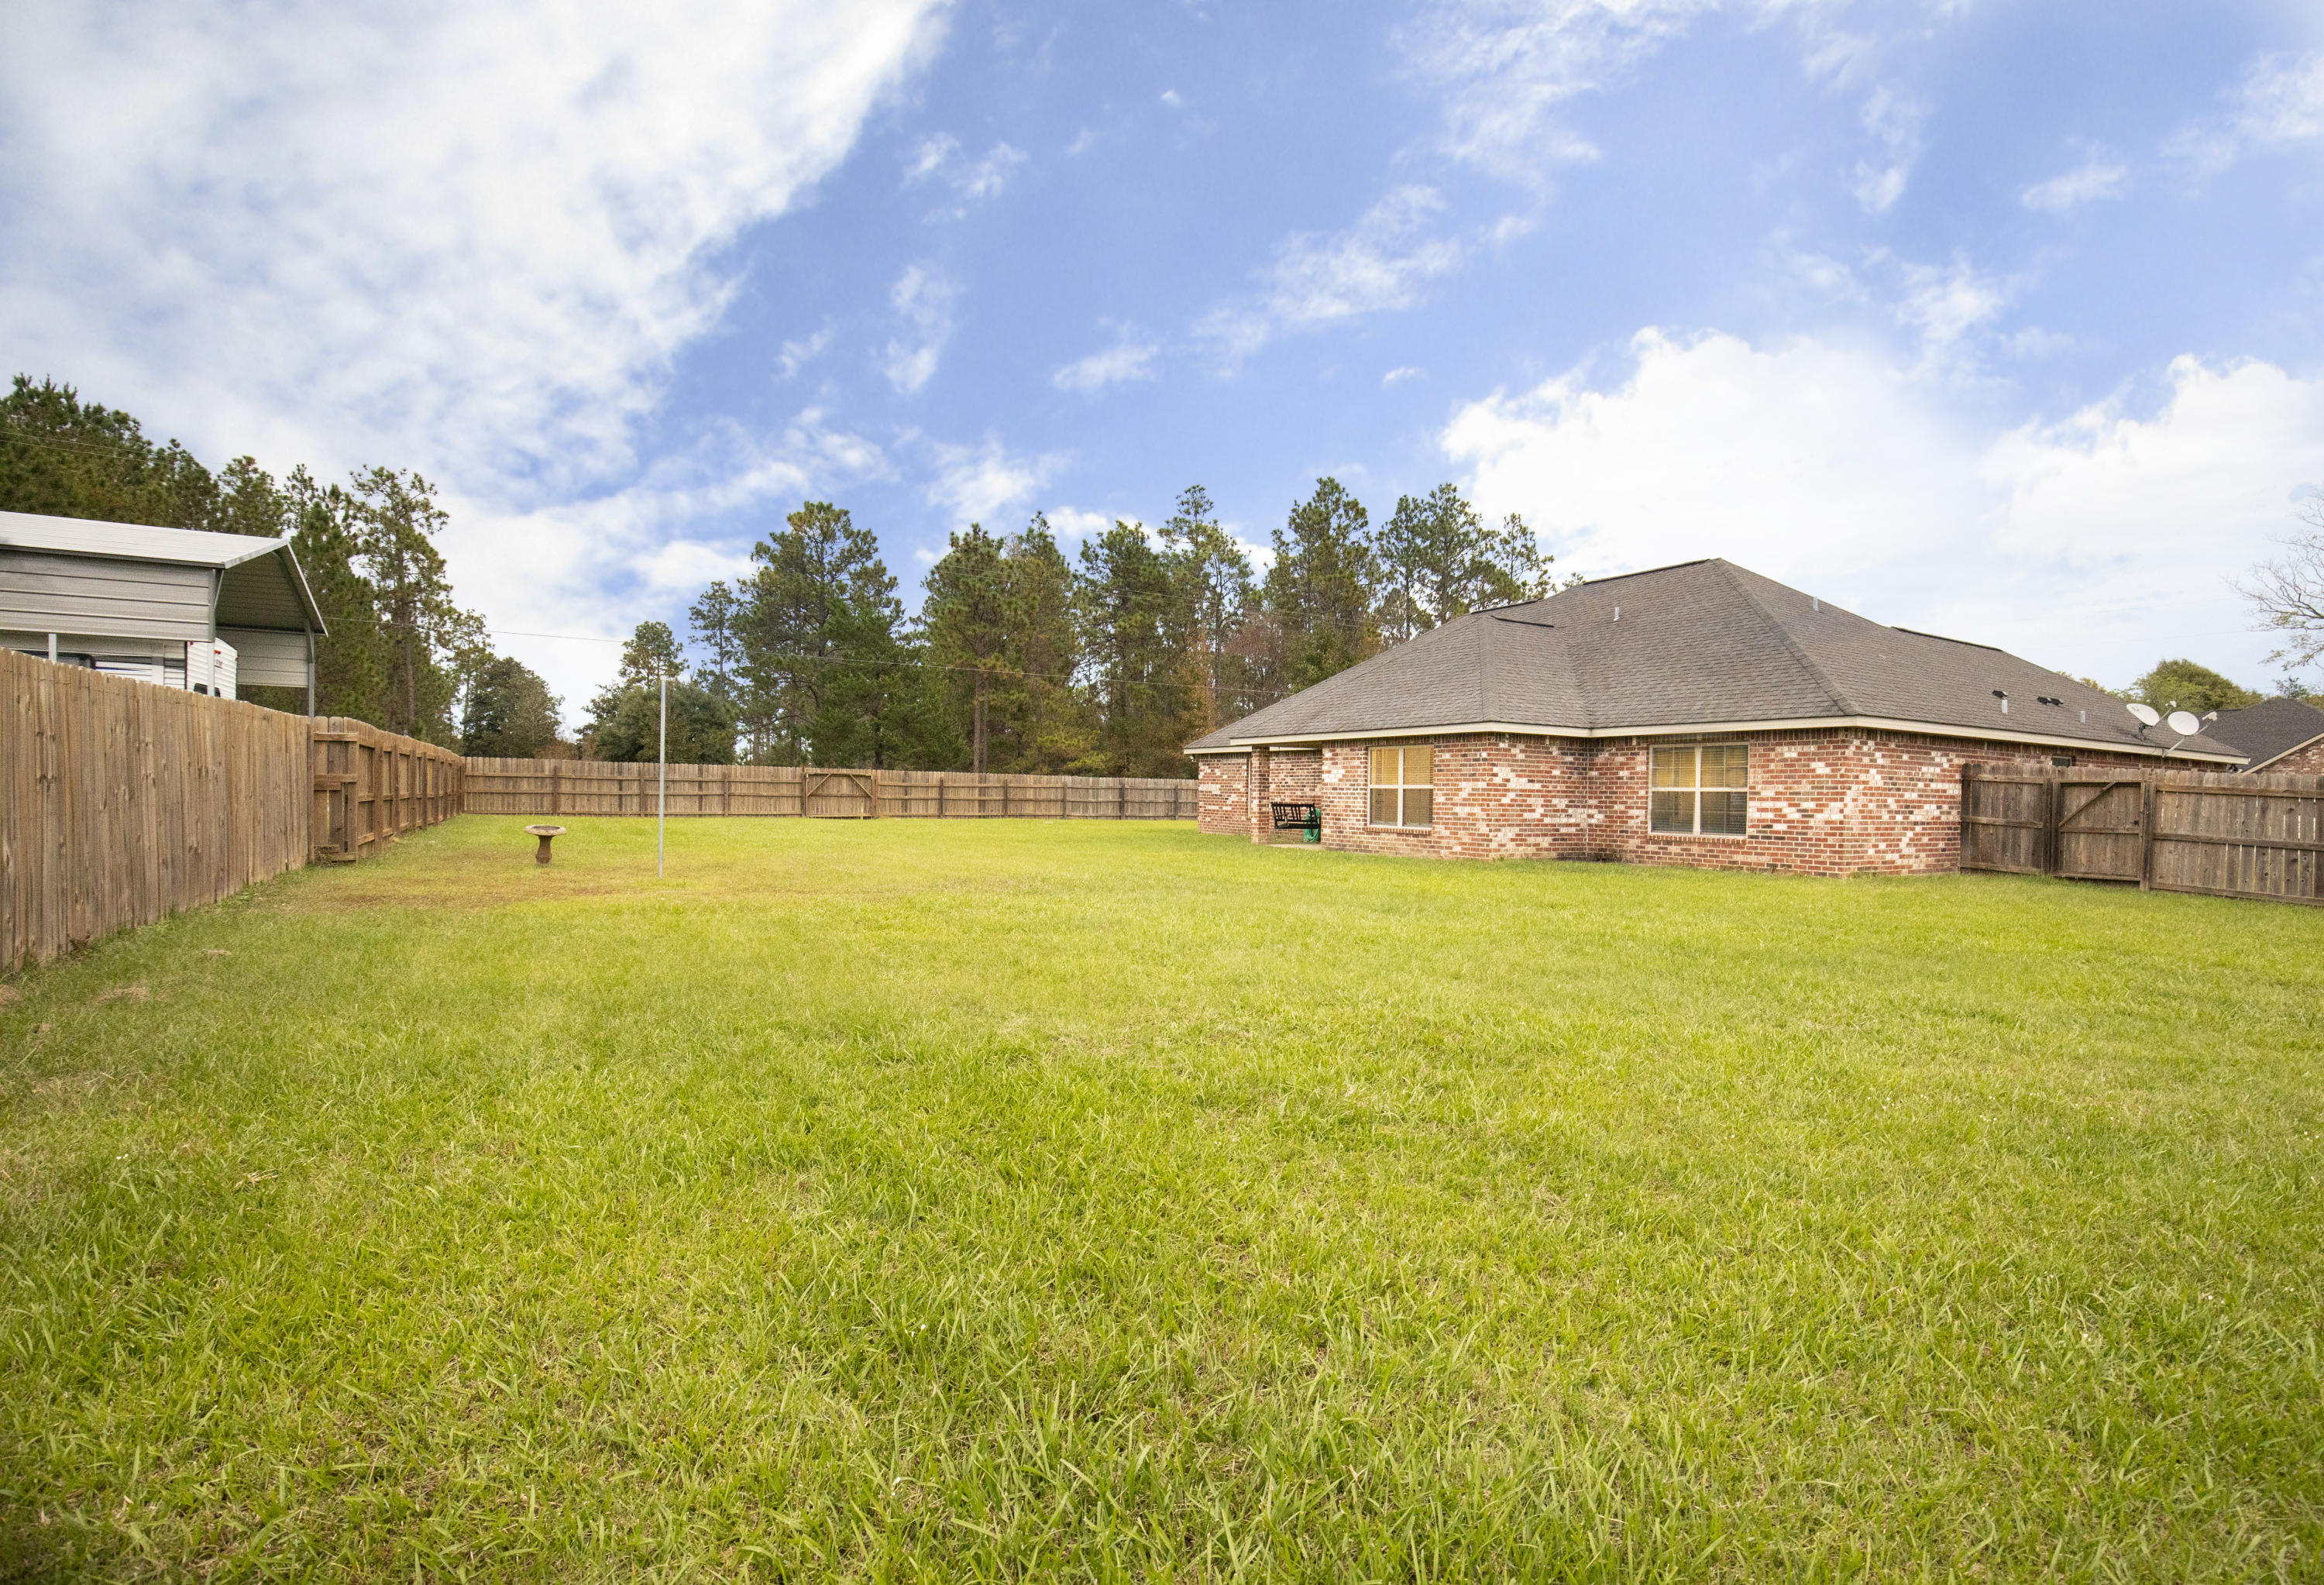 Leesville home for sale, 502 Woodland Pkwy, Leesville LA - $216,900